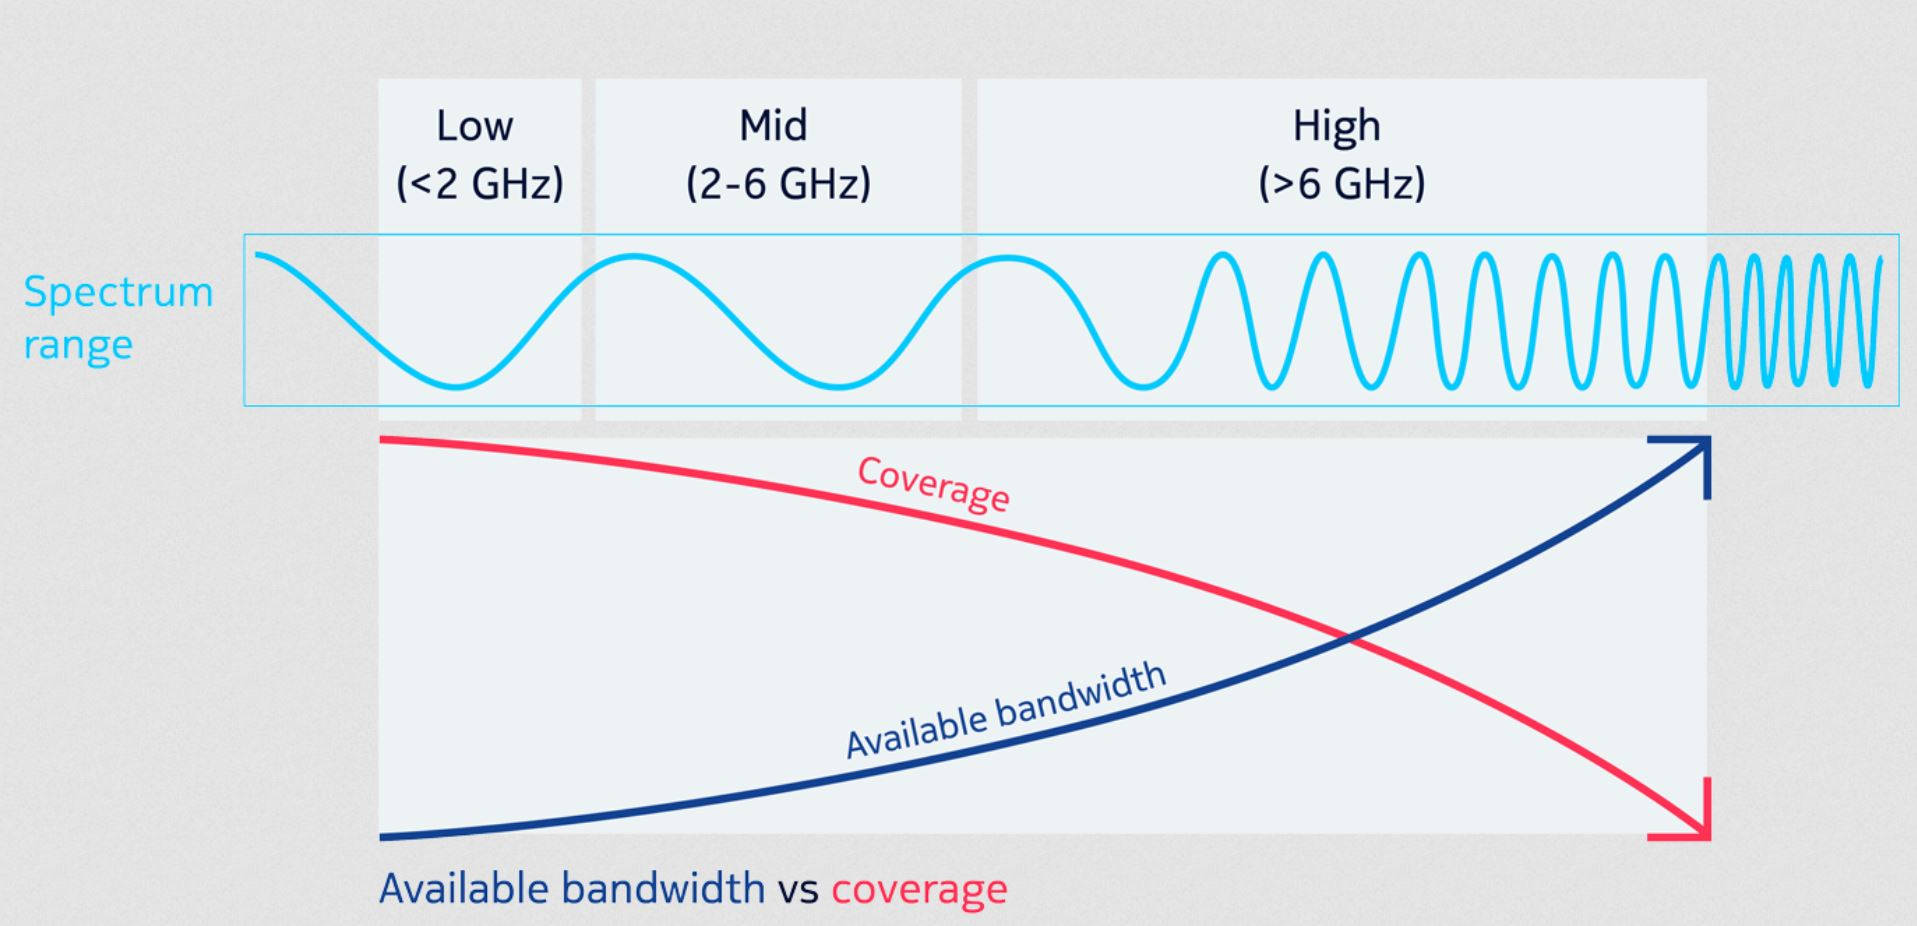 Low-band 5G